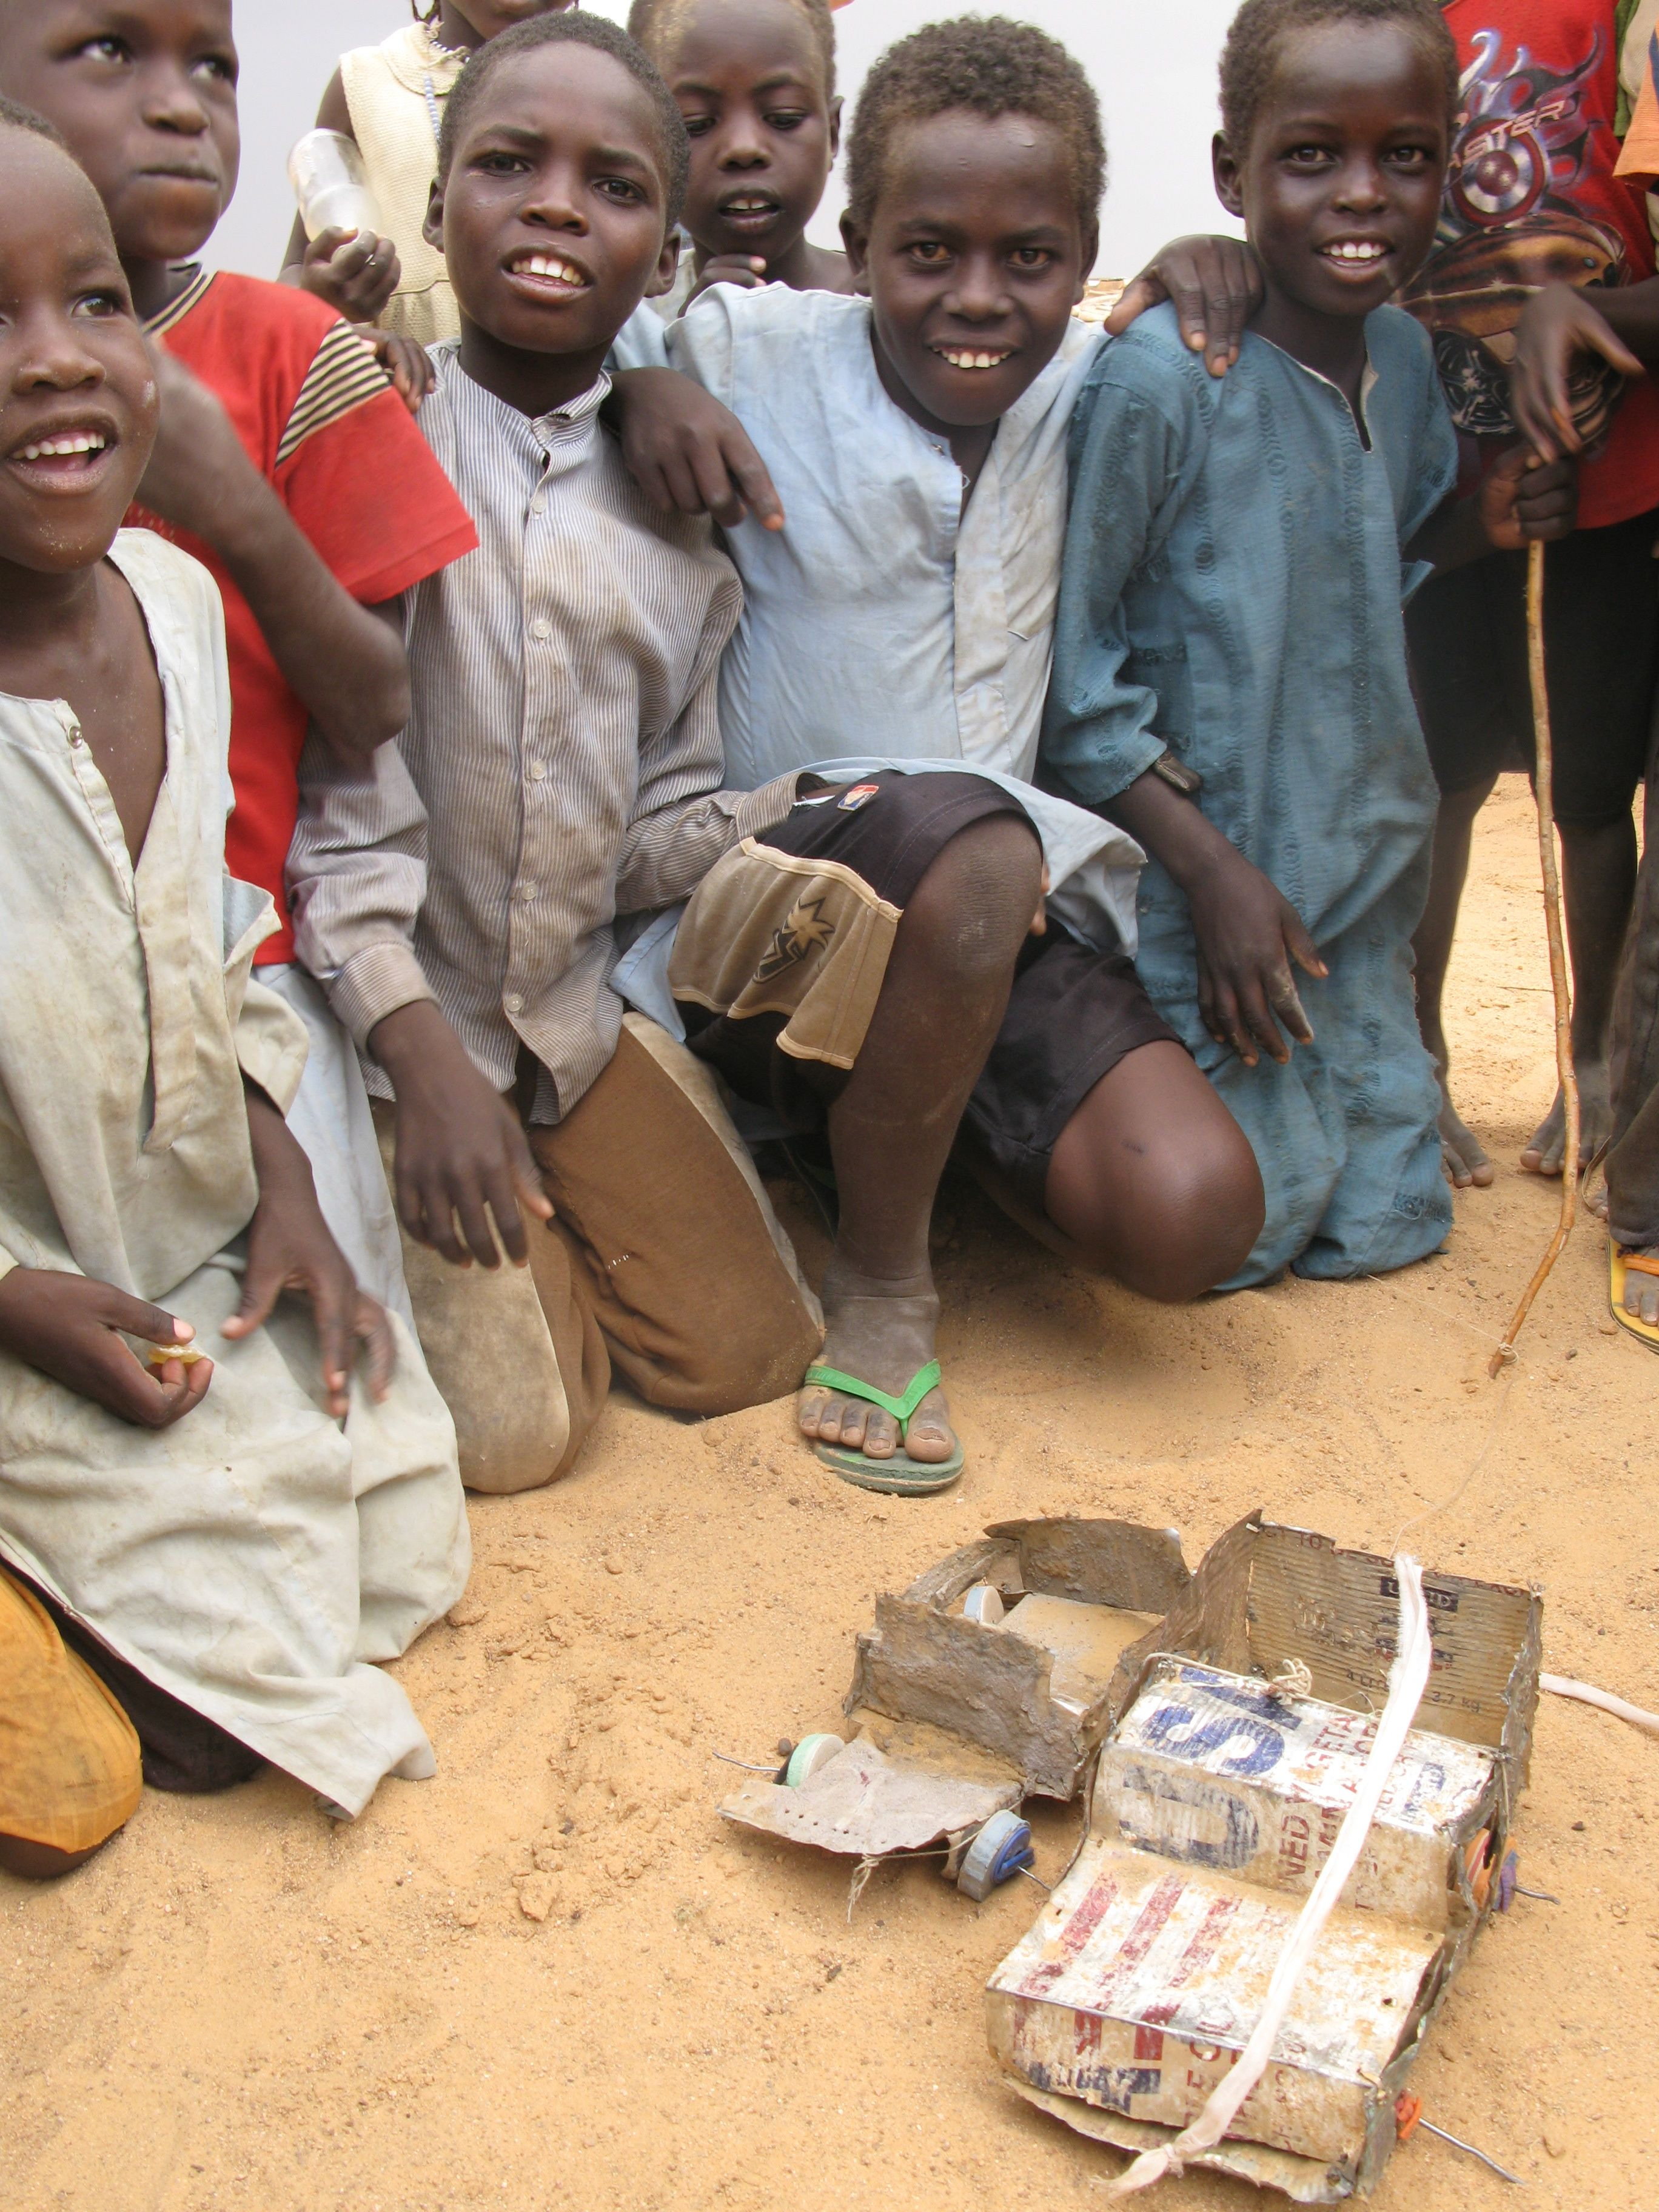 Children with homemade toys at a refugee camp in the Central African Republic run by the International Rescue Committee